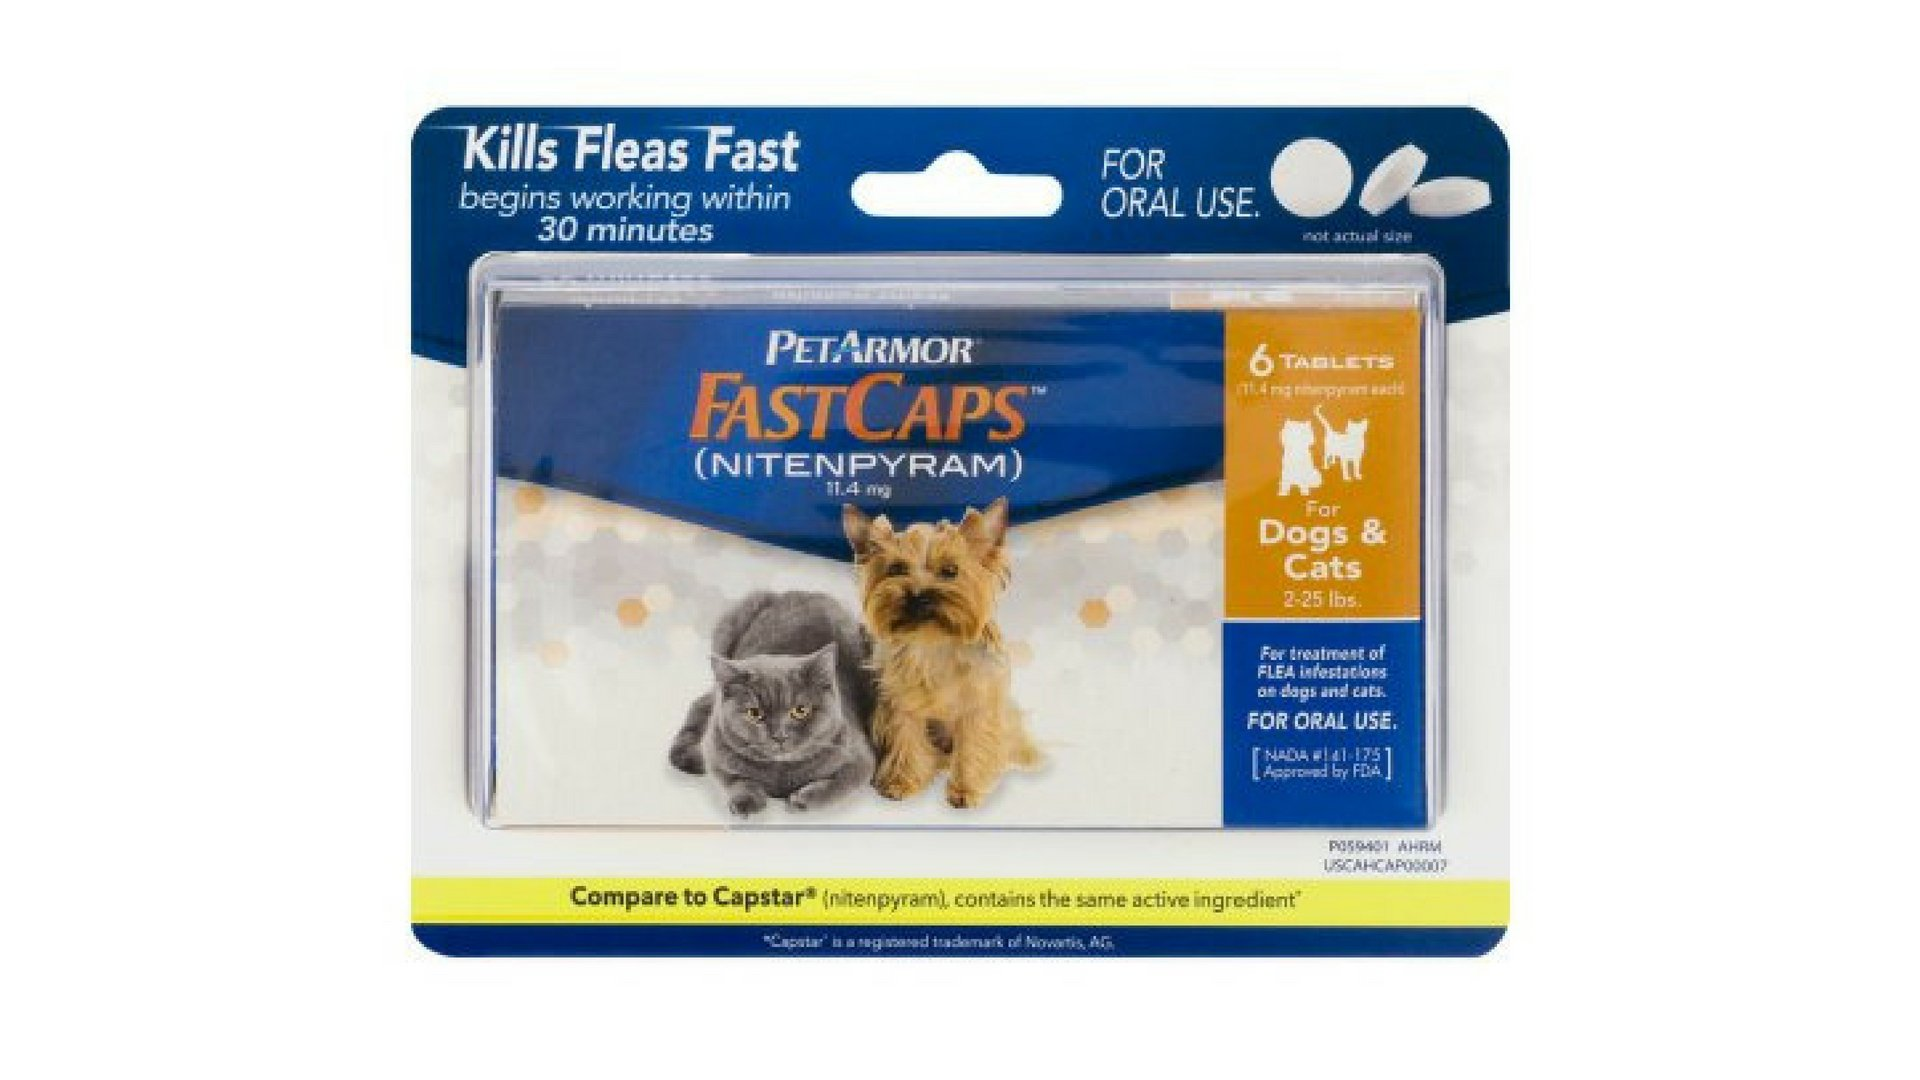 PETARMOR FastCaps (Nitenpyram) Oral Flea Tablets for Small Dogs and Cats (2 to 25 Pounds), 6 Tablets